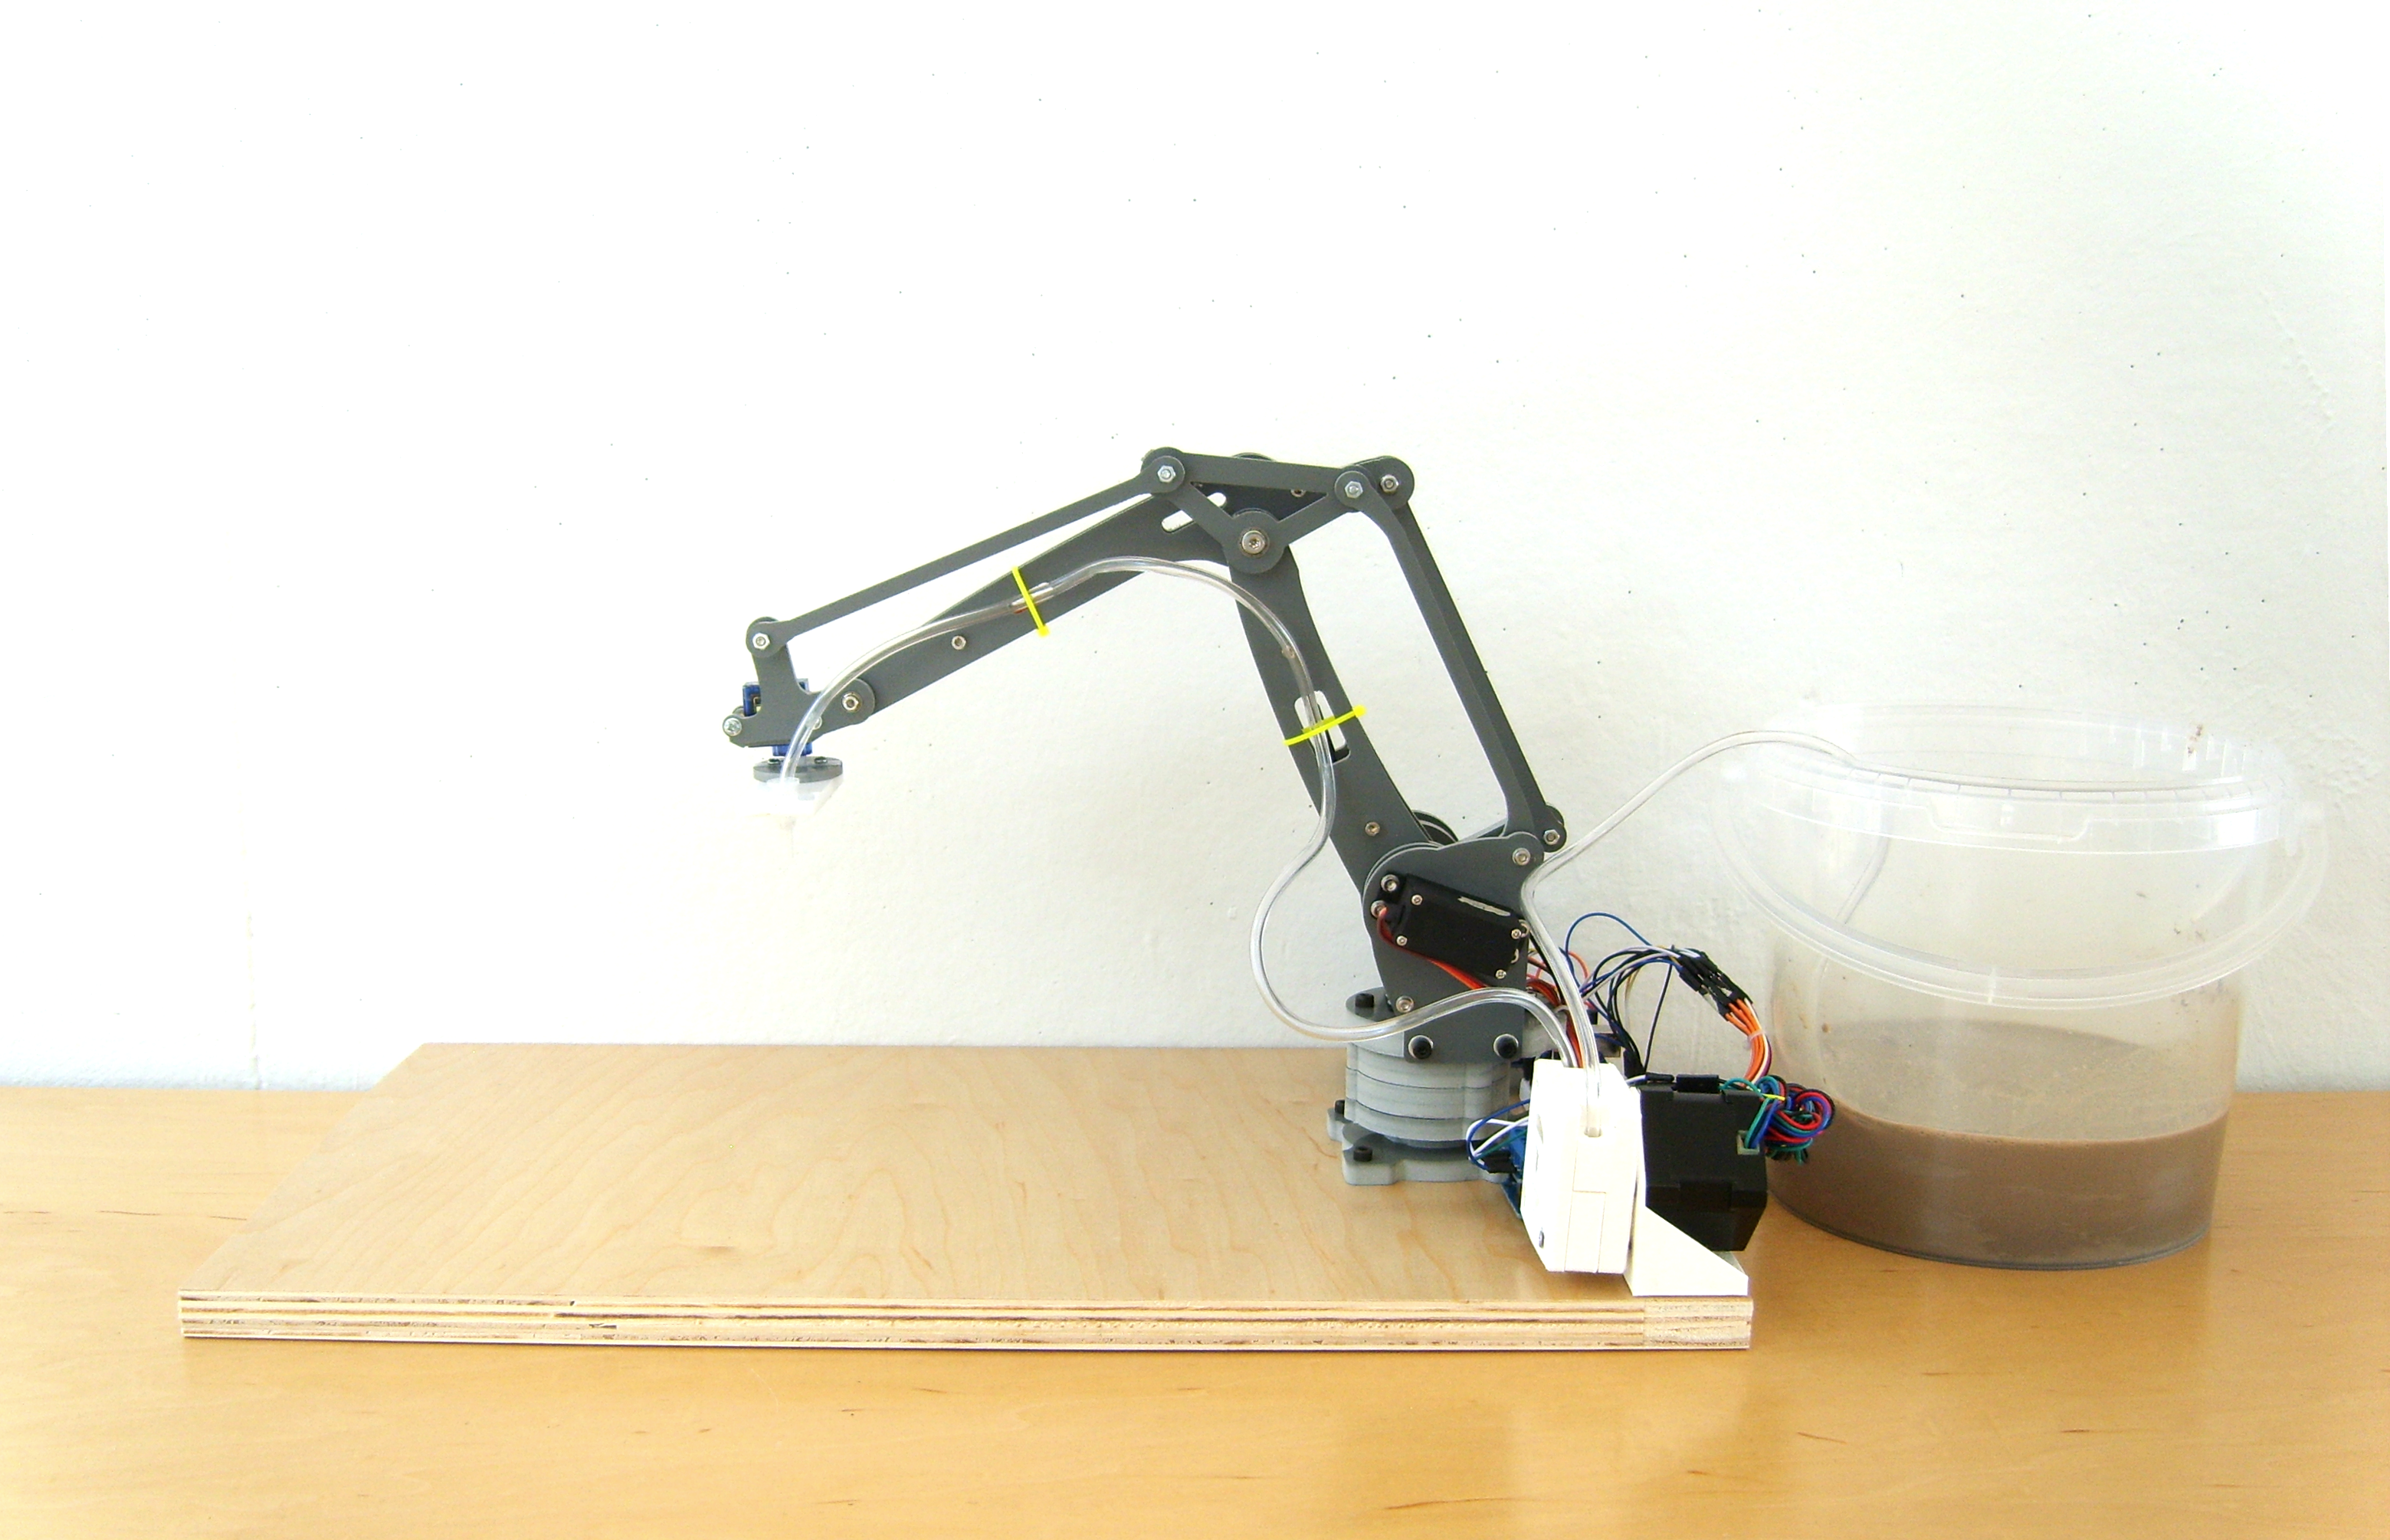 A Robot Arm with a Clay Extruder